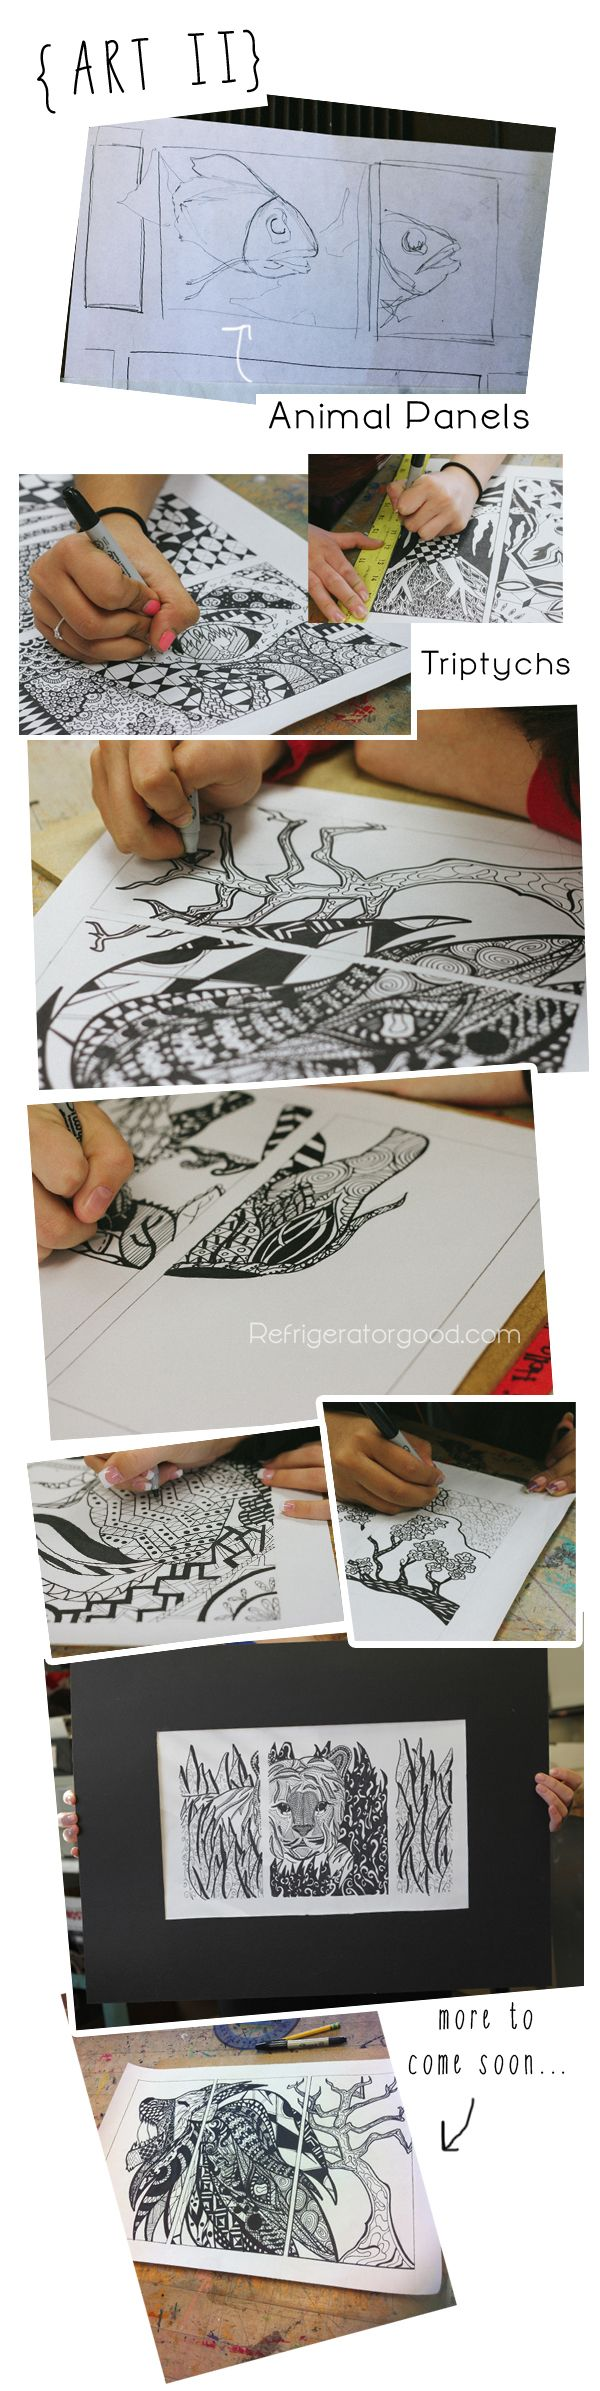 Annabella 67 Art Line Design : Best images about art lesson ideas drawing on pinterest